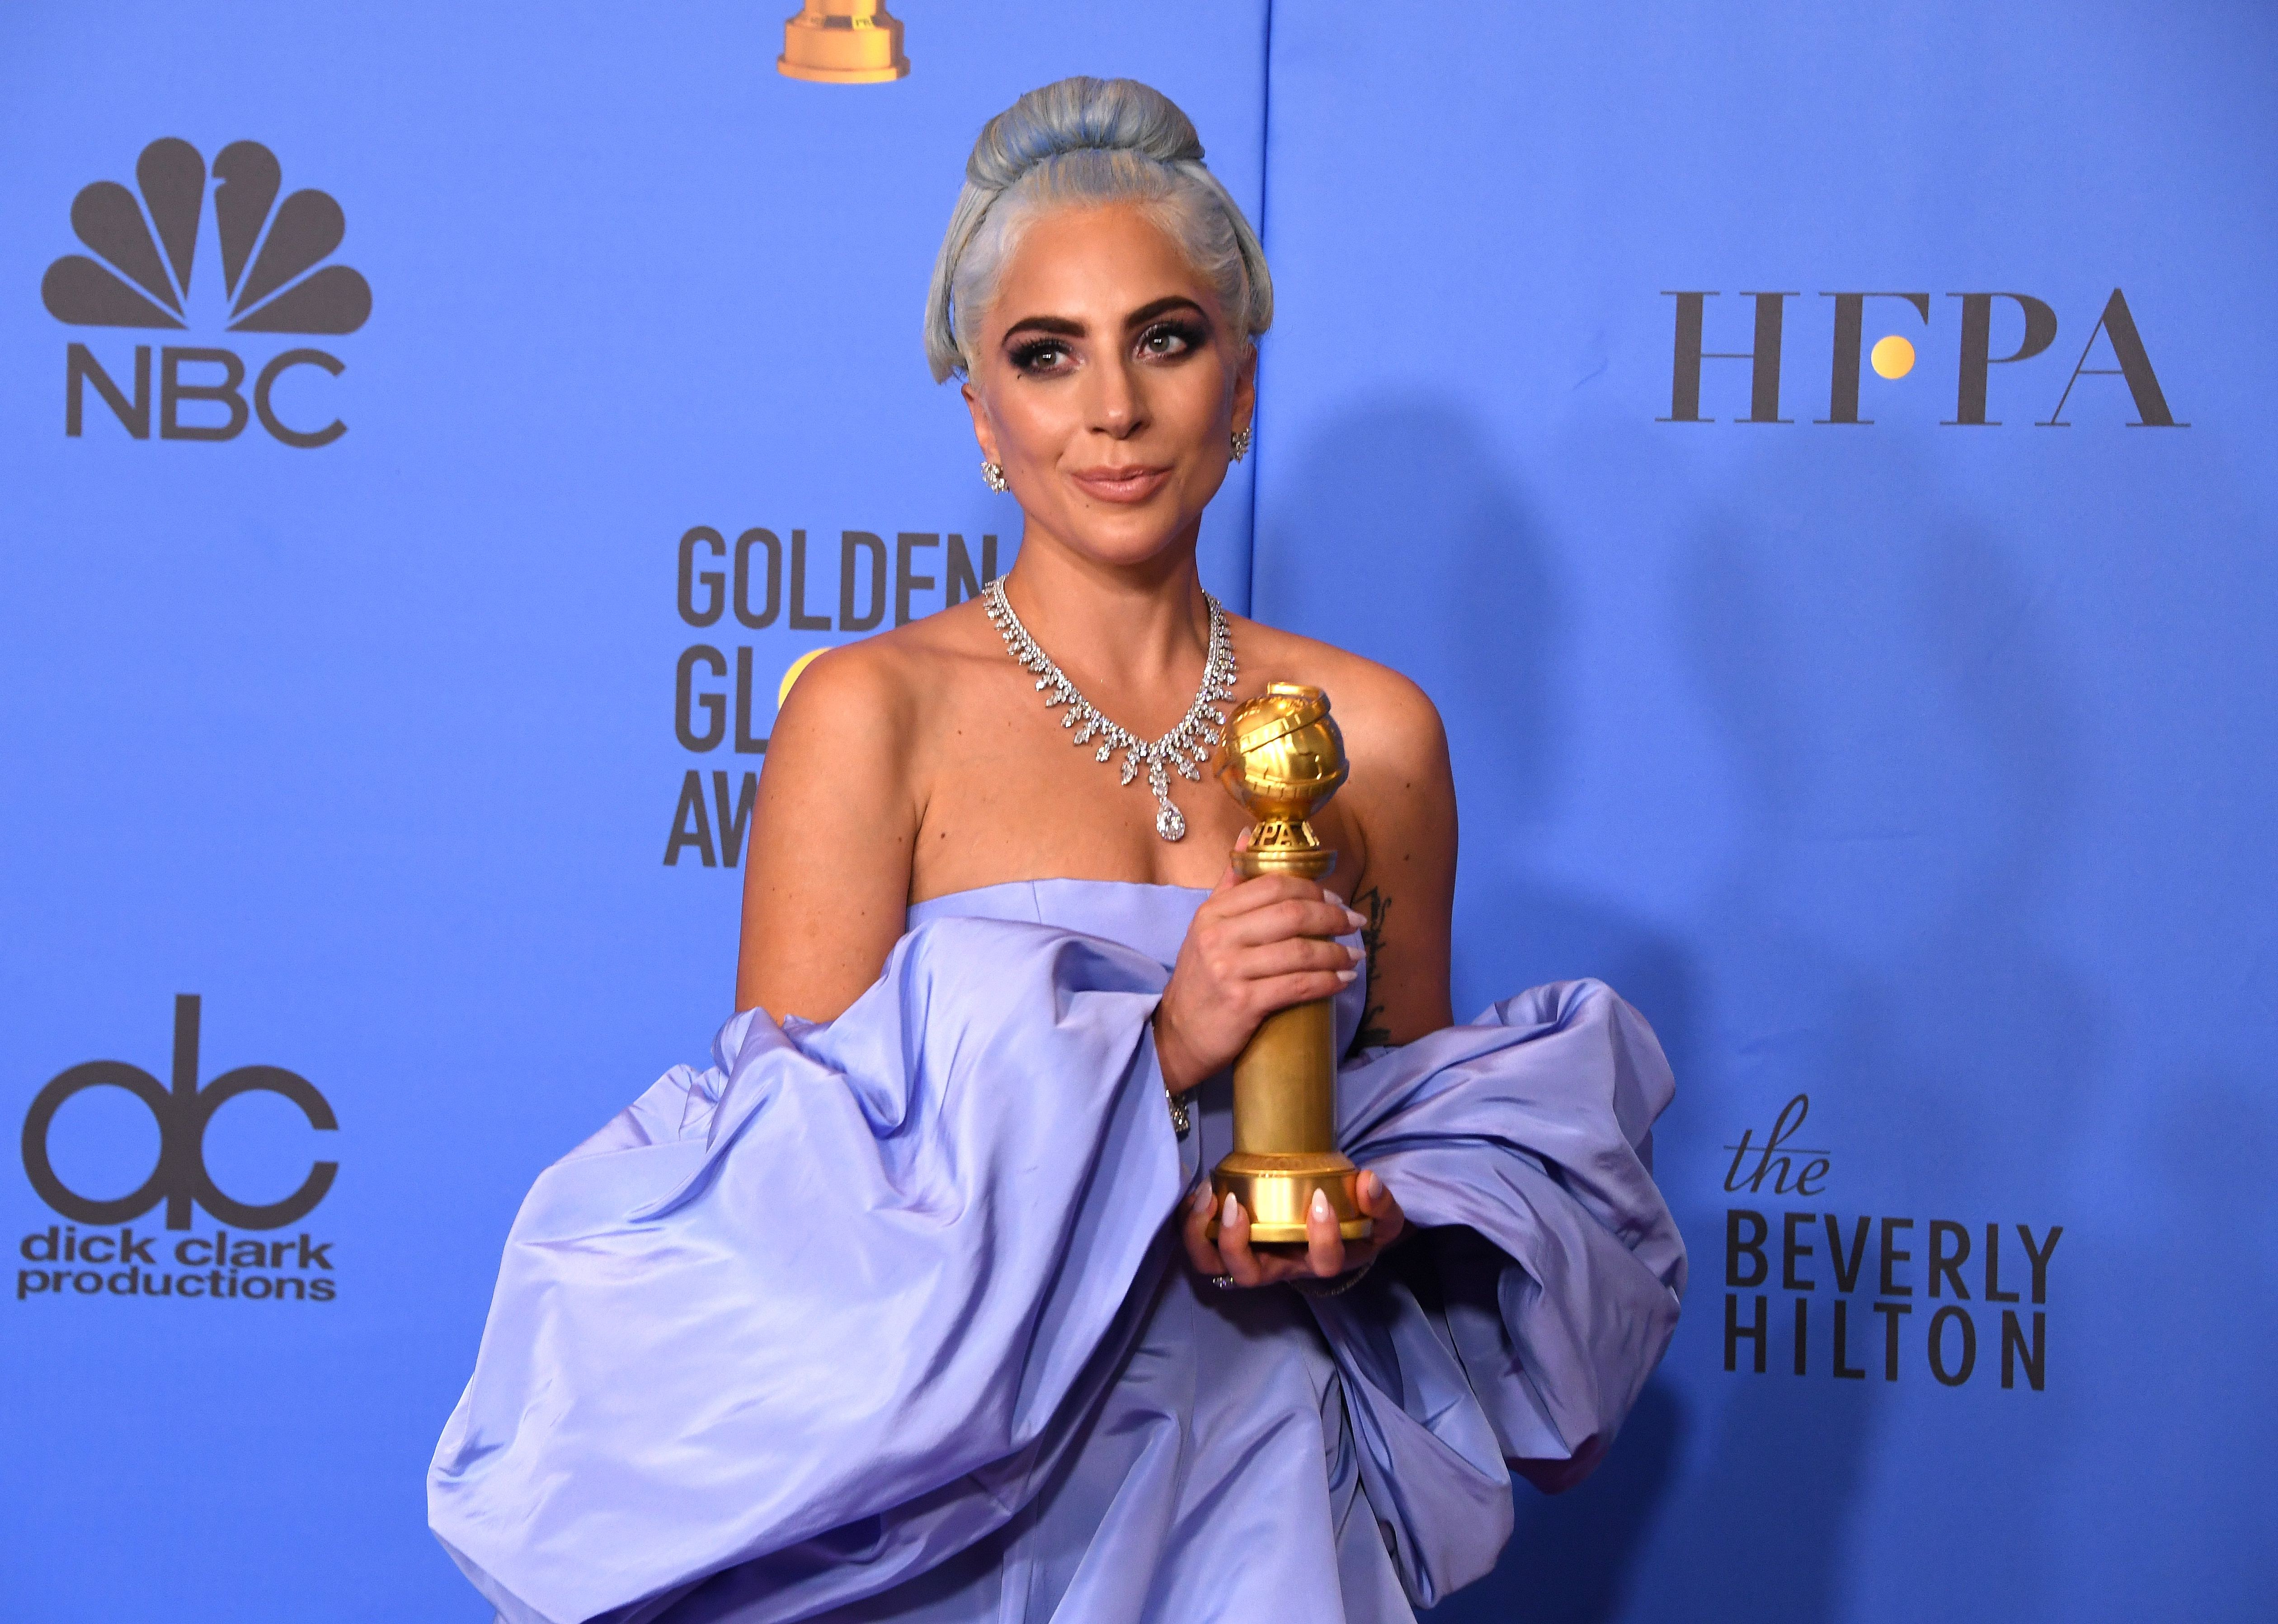 The Daily Diet and Exercise Routine Lady Gaga Swears By